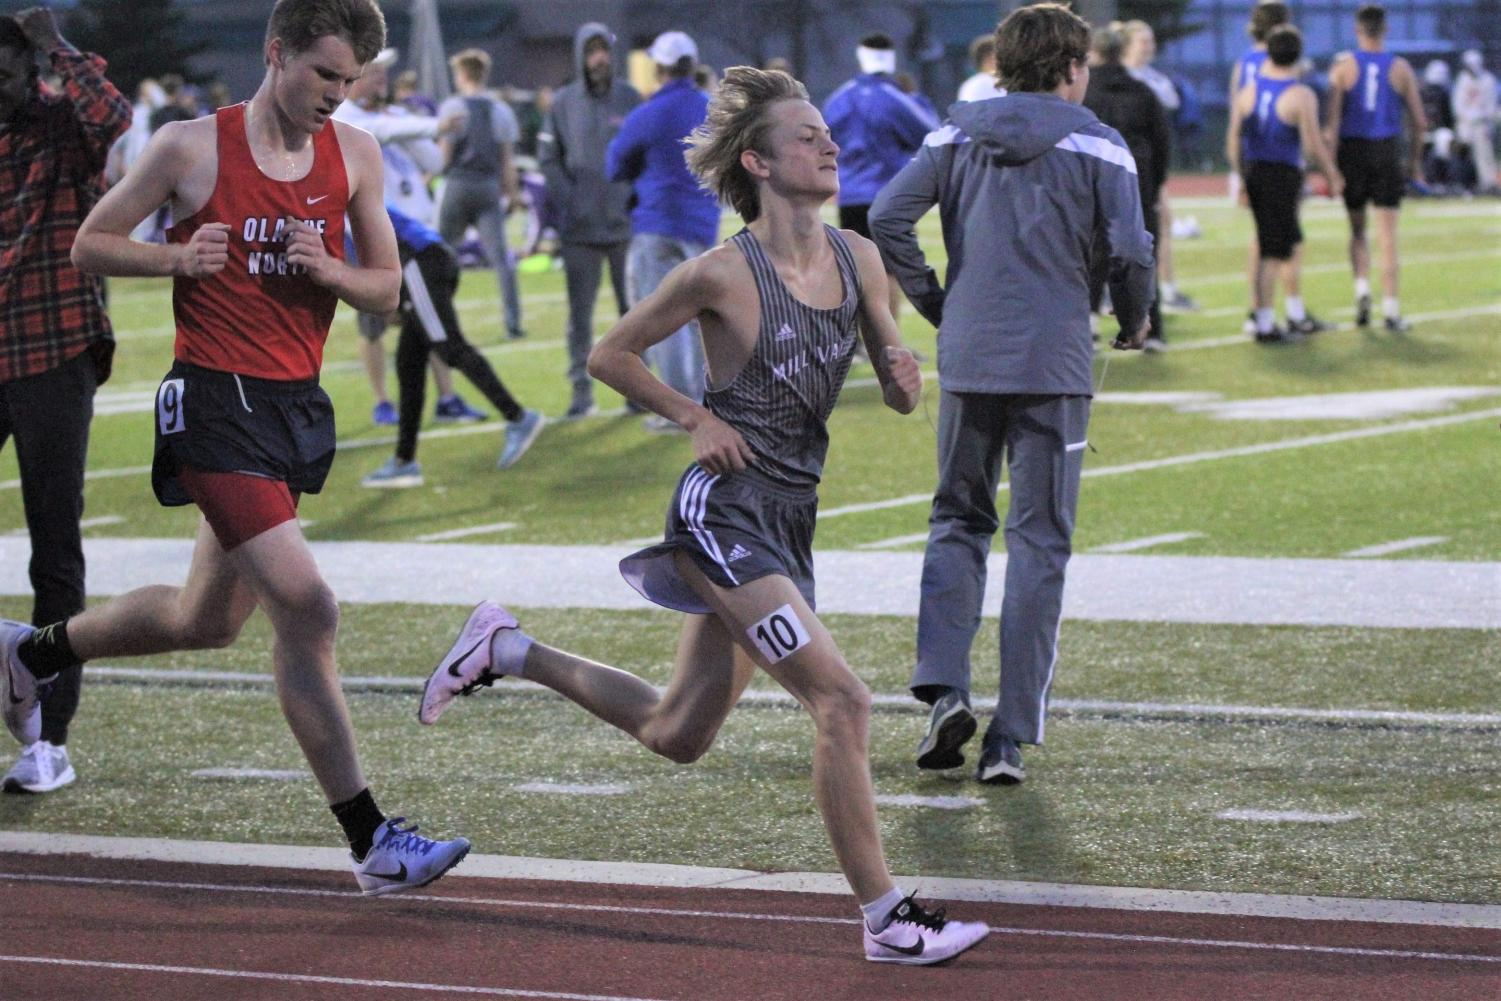 Running+ahead+of+his+competitor%2C+sophomore+Cameron+Coad+competes+in+the+3200+meter+race.